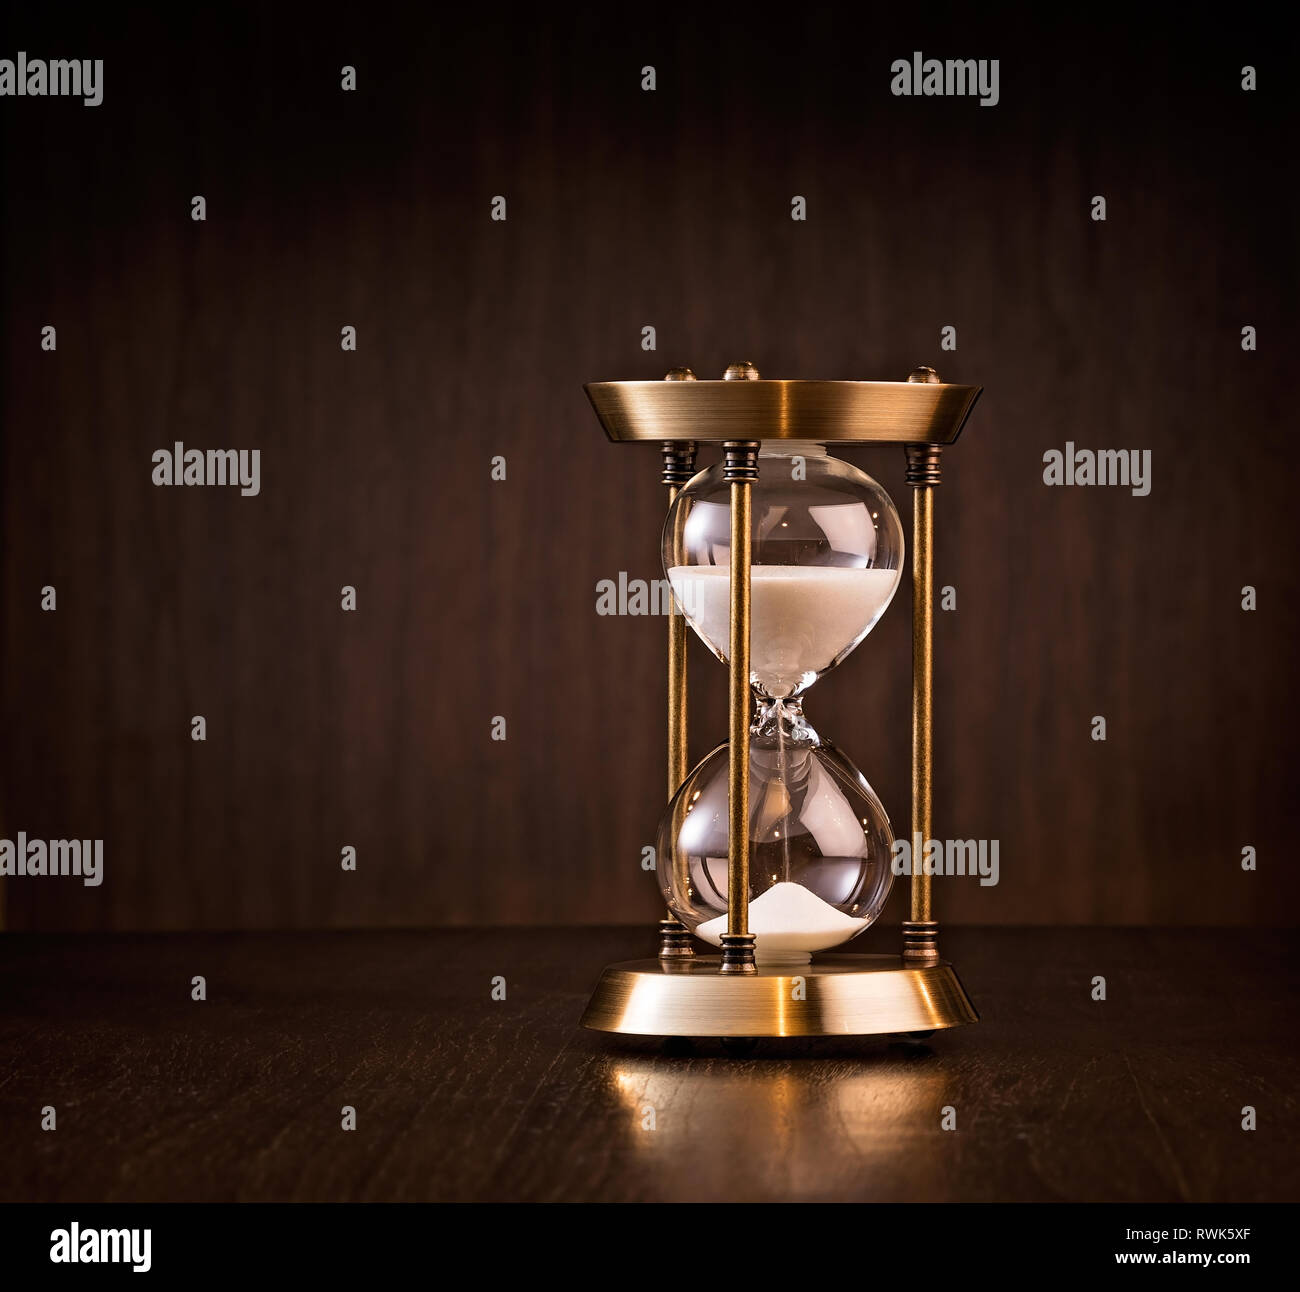 Hourglass measuring time passing.  Business deadline or running out of time concept. - Stock Image